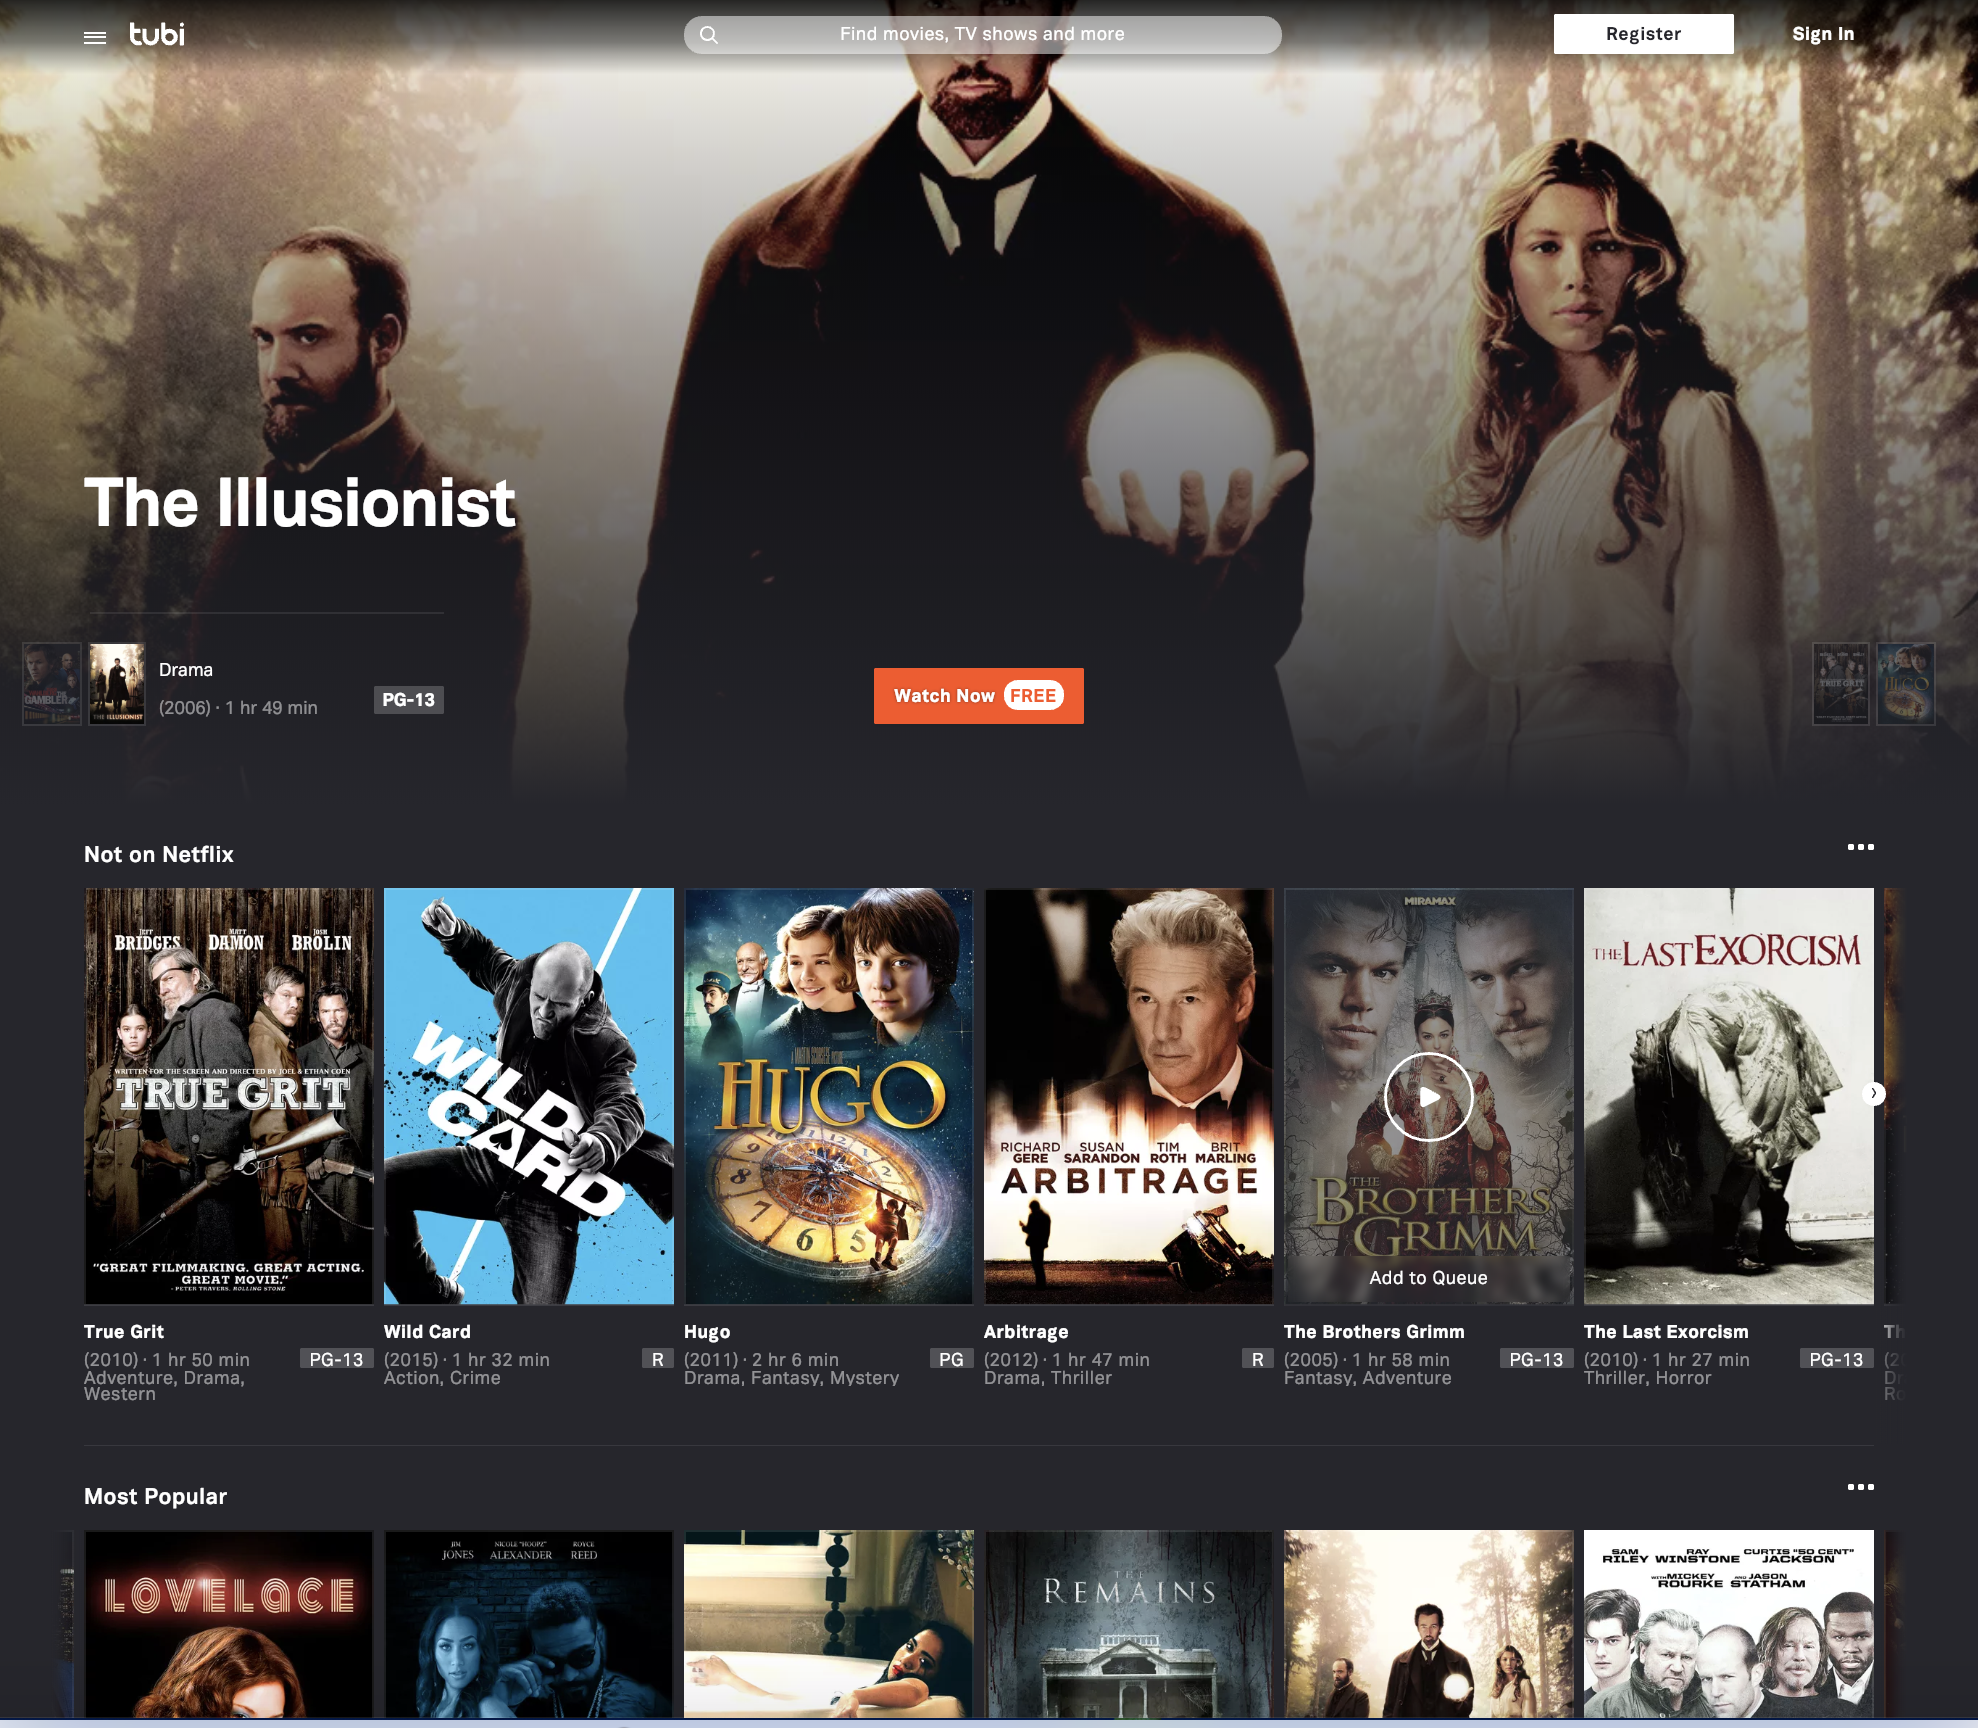 Fox Corp. Buys Free, Ad-Supported Streamer Tubi For $440 Million 03/18/2020